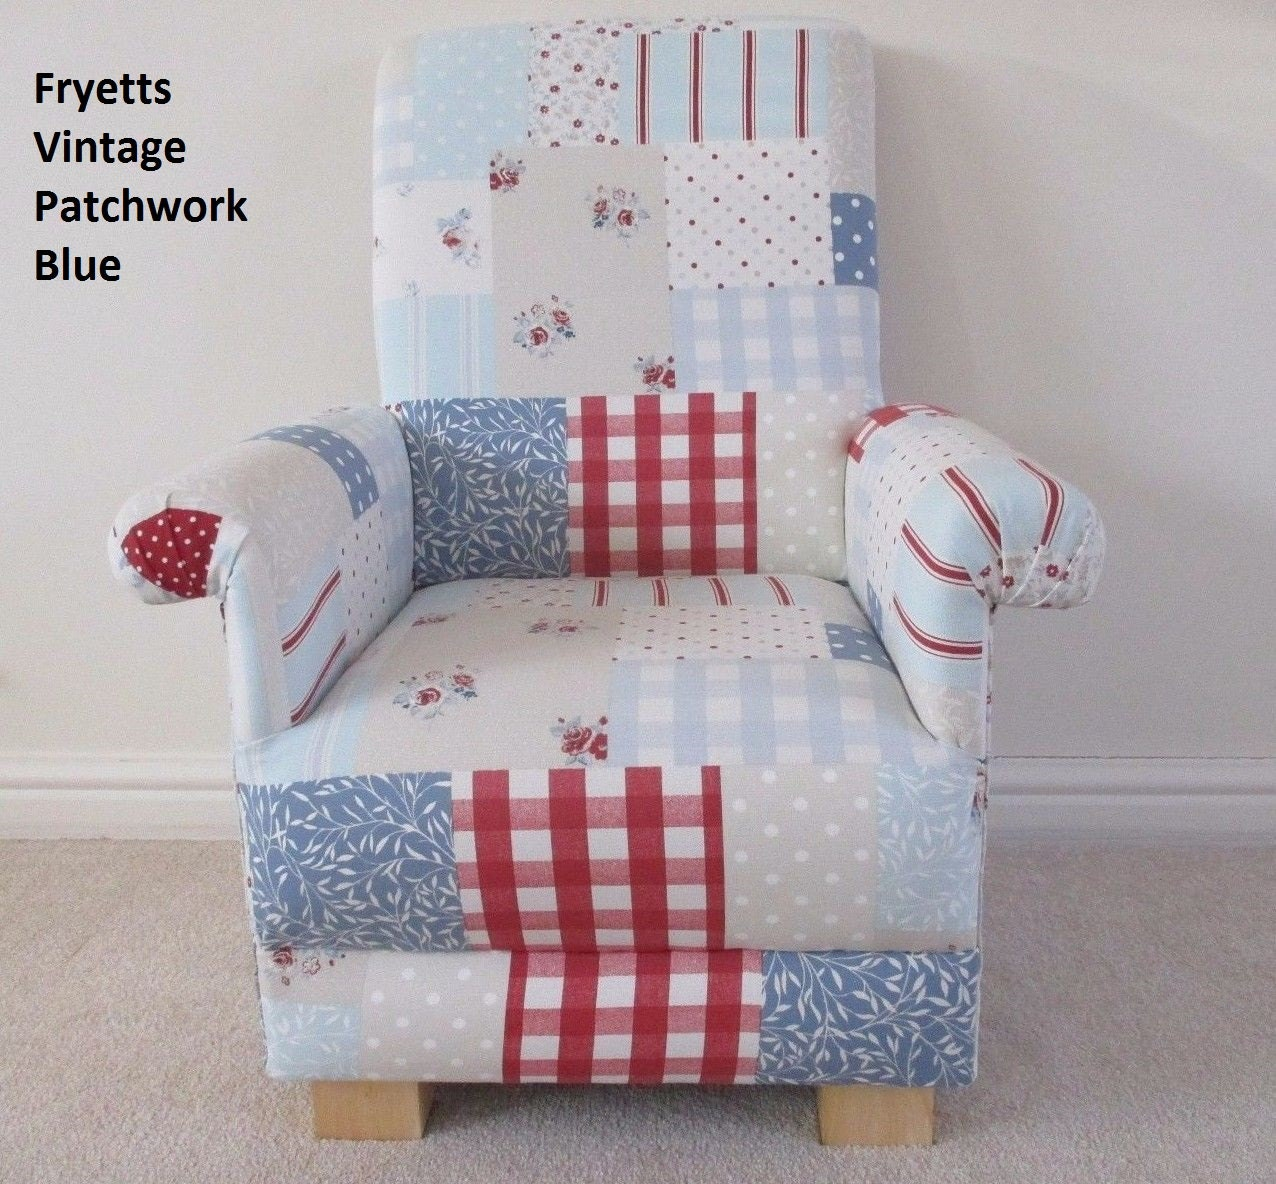 Fryetts Vintage Patchwork Fabric Childs Chair Armchair Shabby Chic Gingham Blue Pink Kids Nursery Bedroom Small